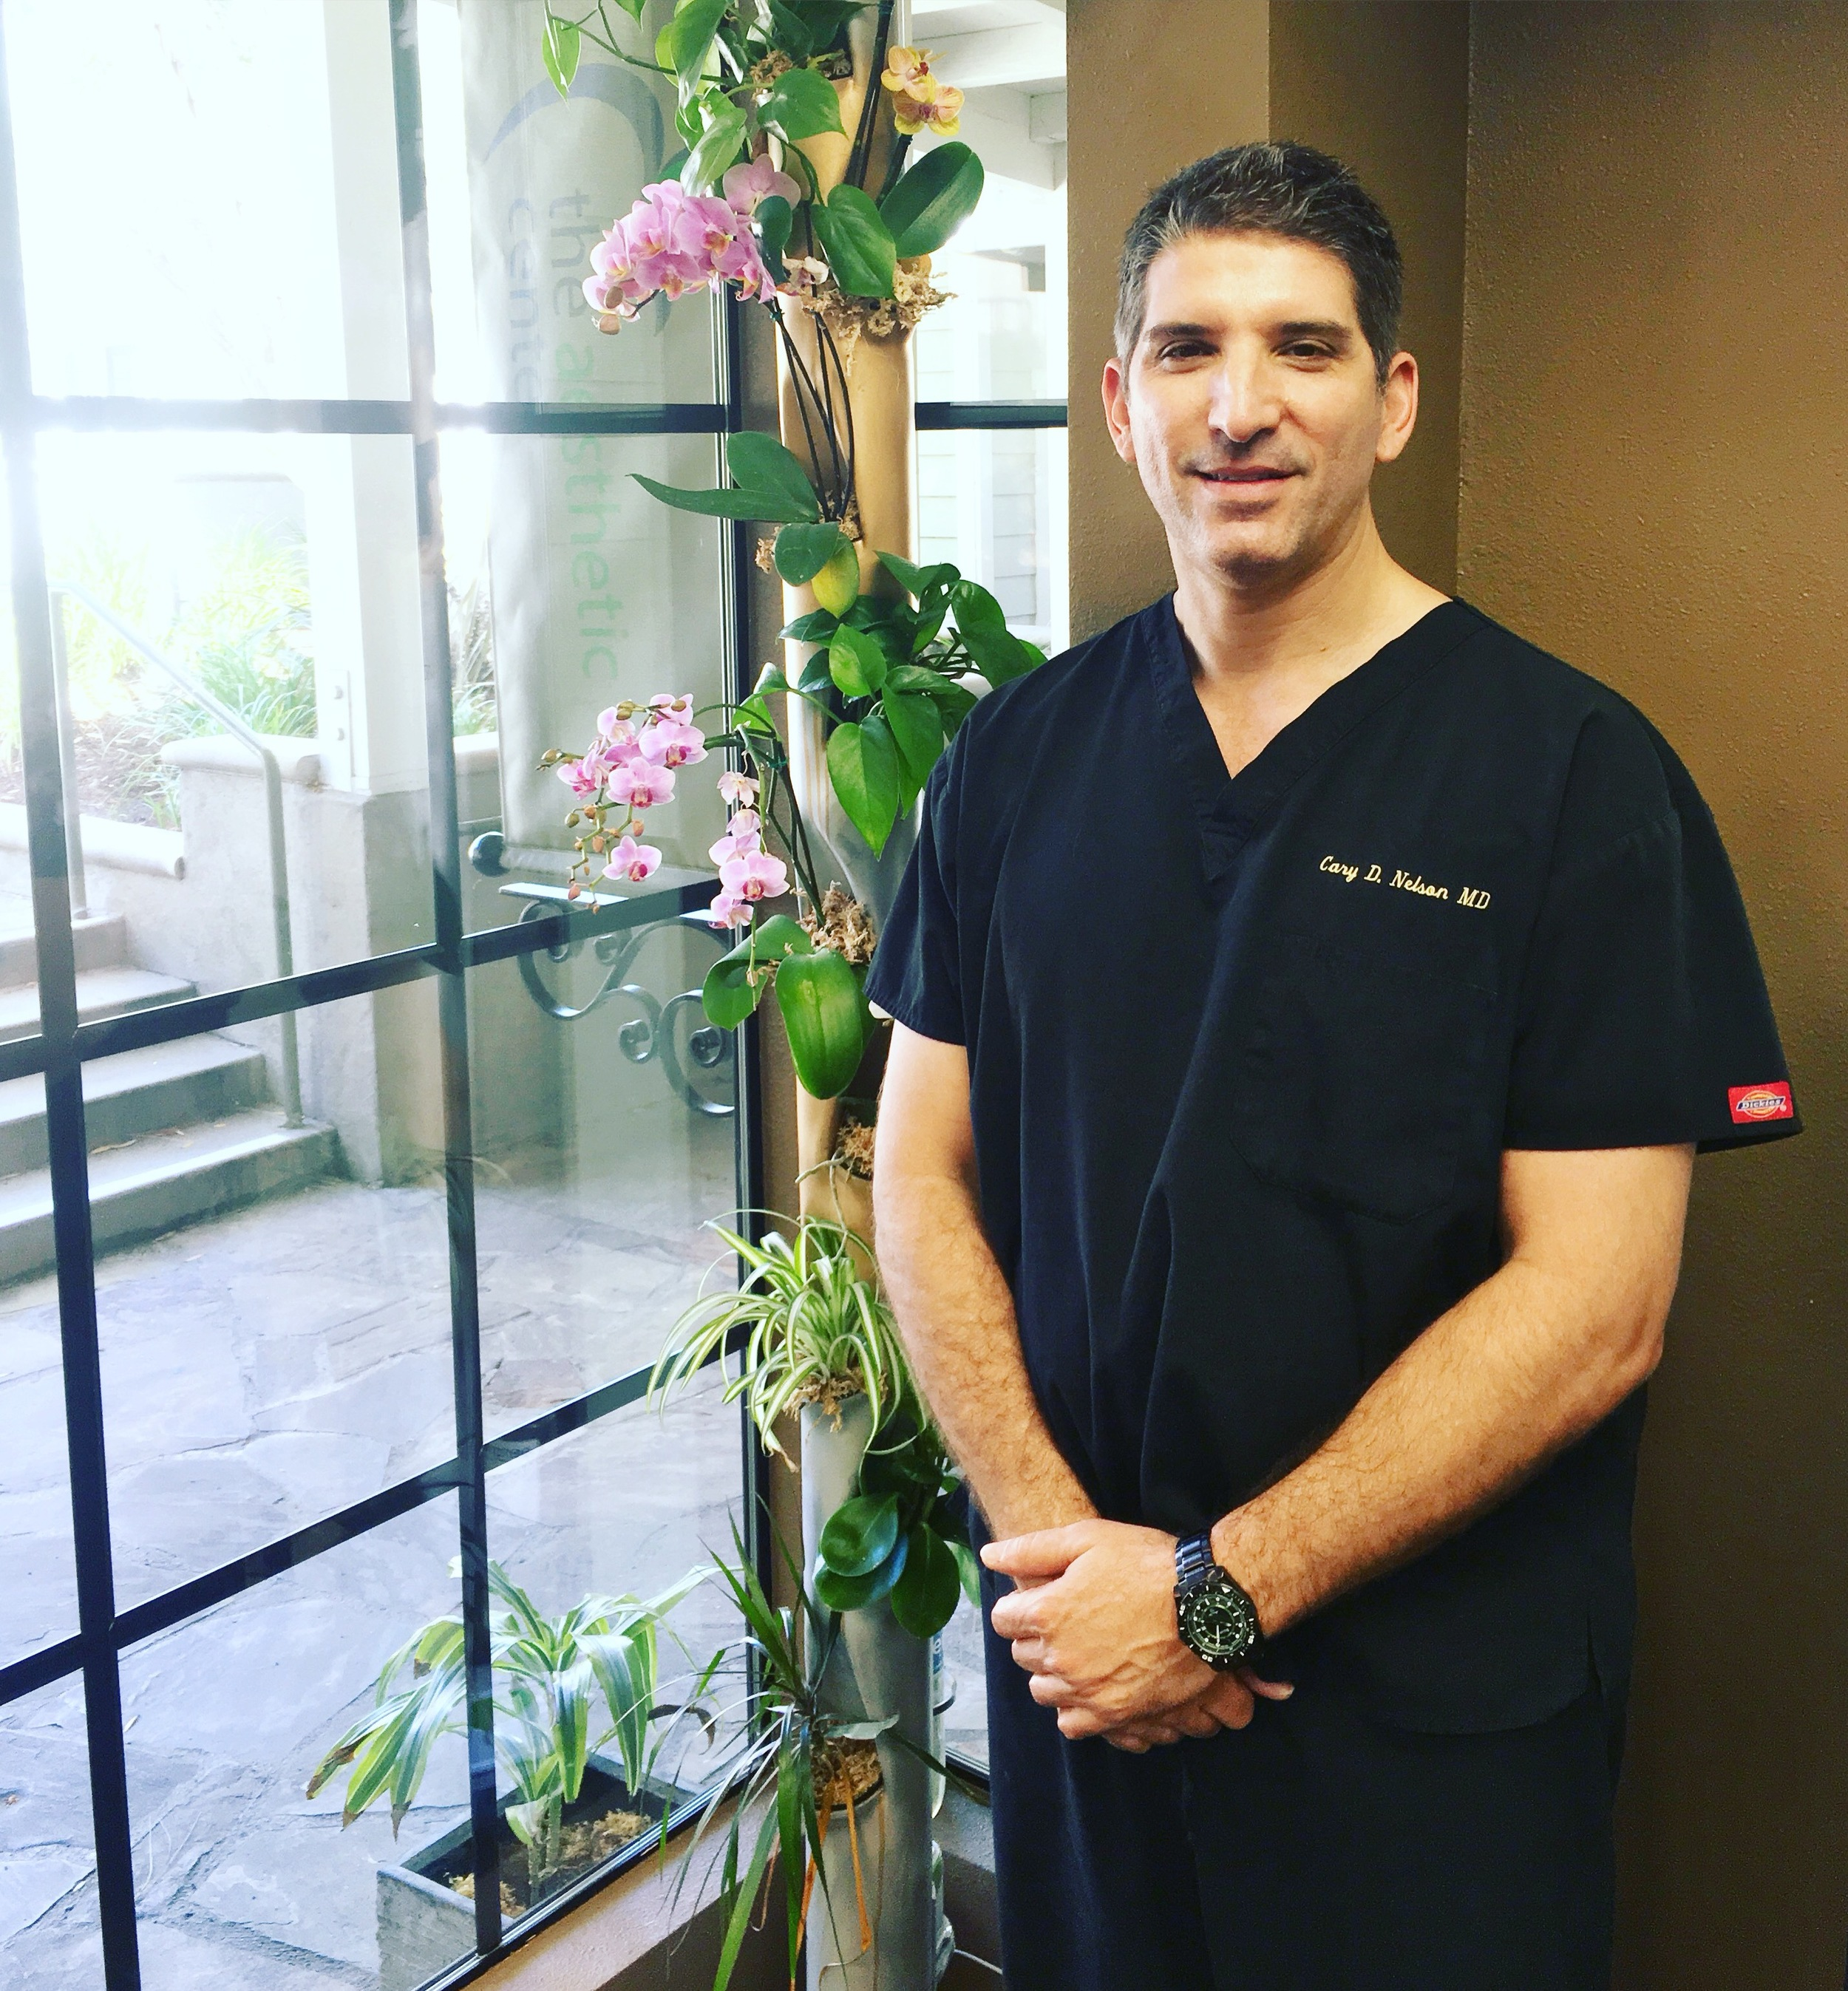 Aergrow system at The Aesthetic Center with Dr. Carey D. Nelson M.D.